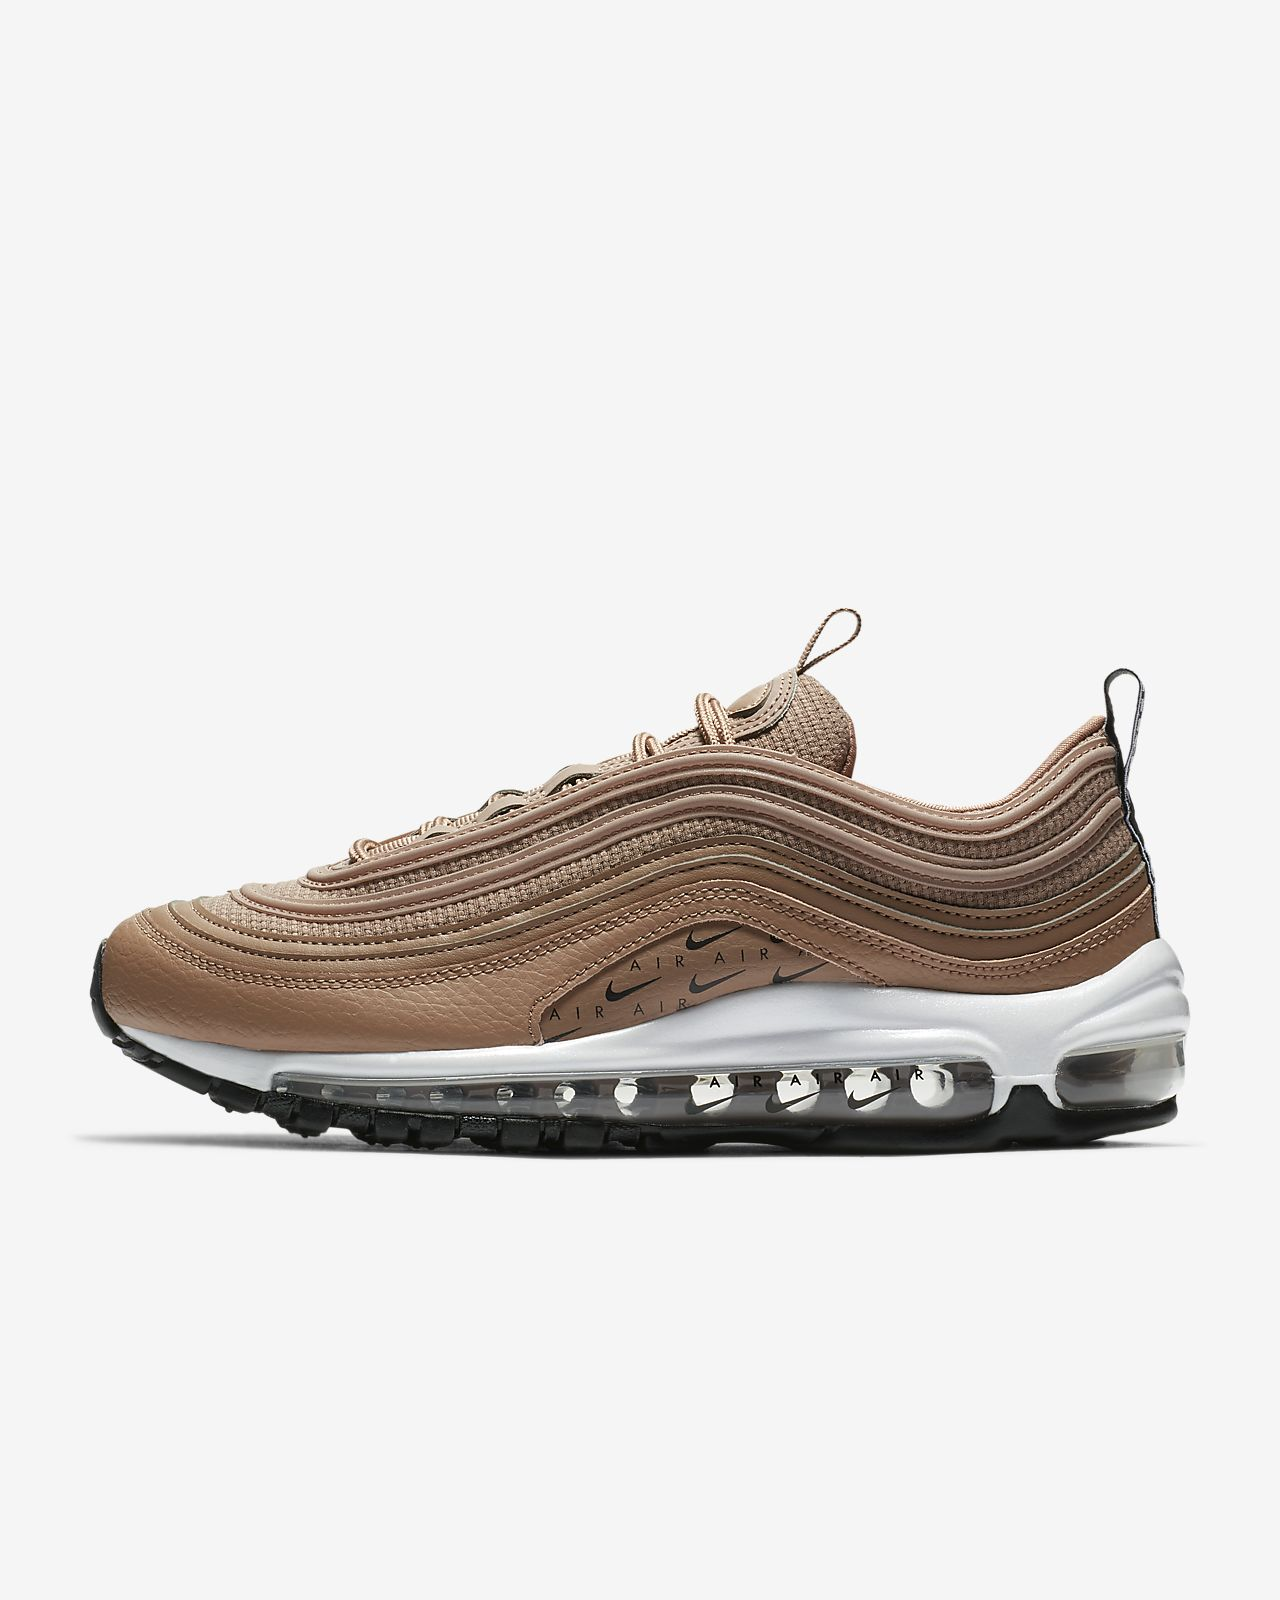 Chaussure Nike Air Max 97 Lx Overbranded Pour Femme Nike Com Ca